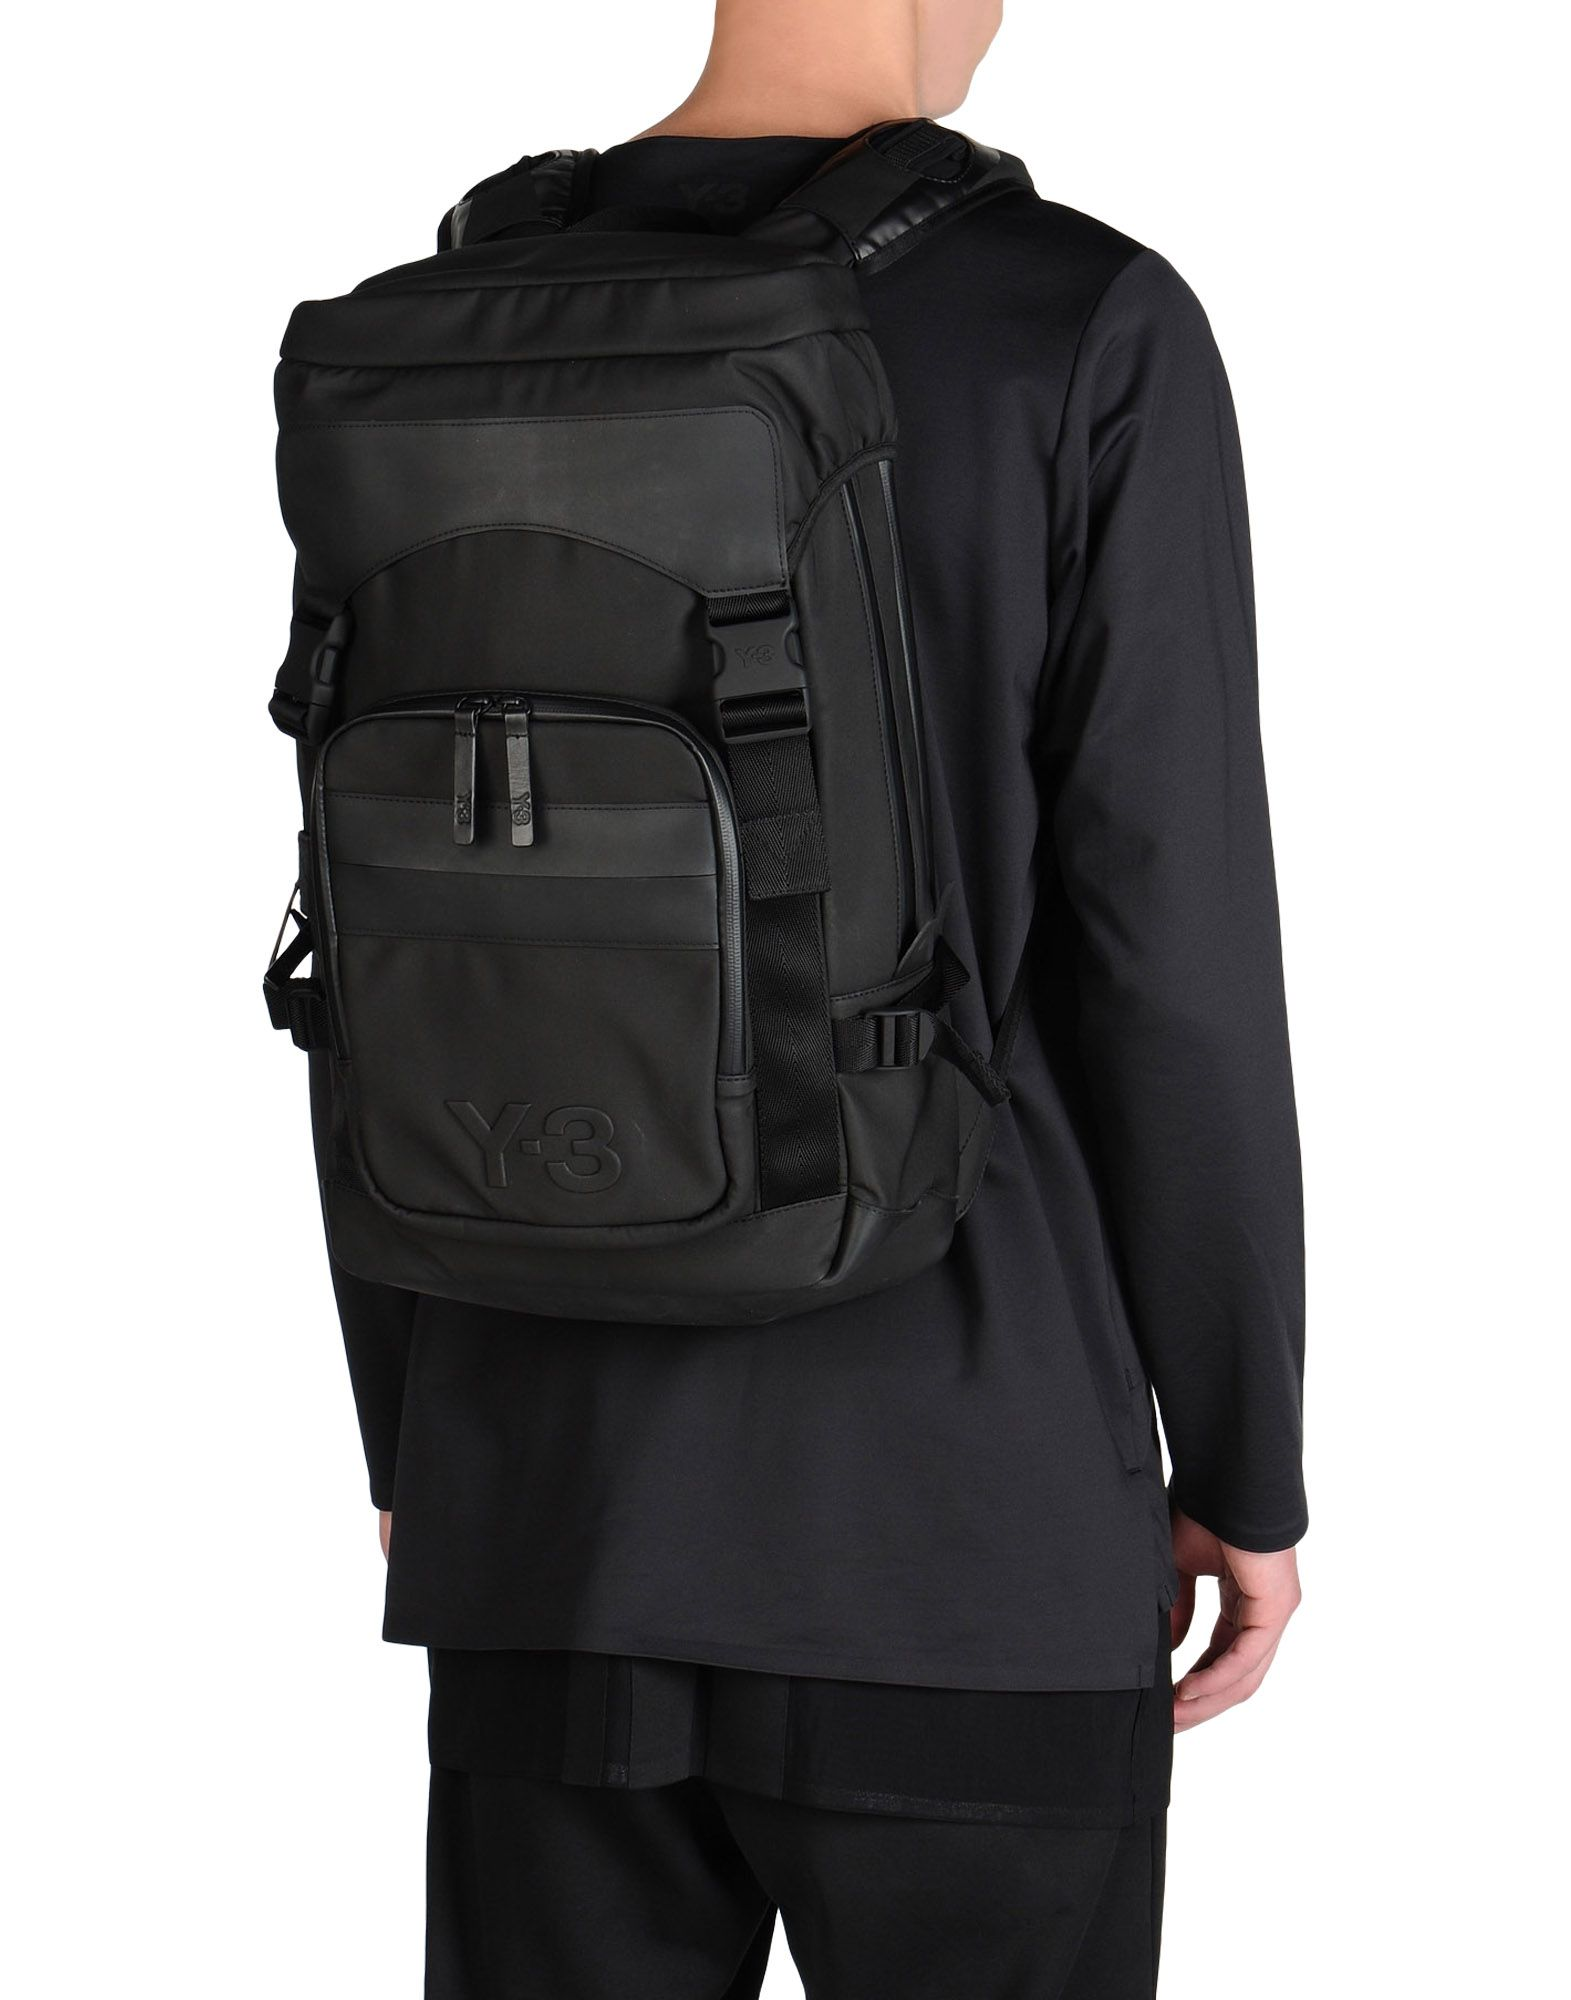 f541e3fc4536 ... Y-3 Y-3 ULTRATECH BACKPACK Backpack E ...